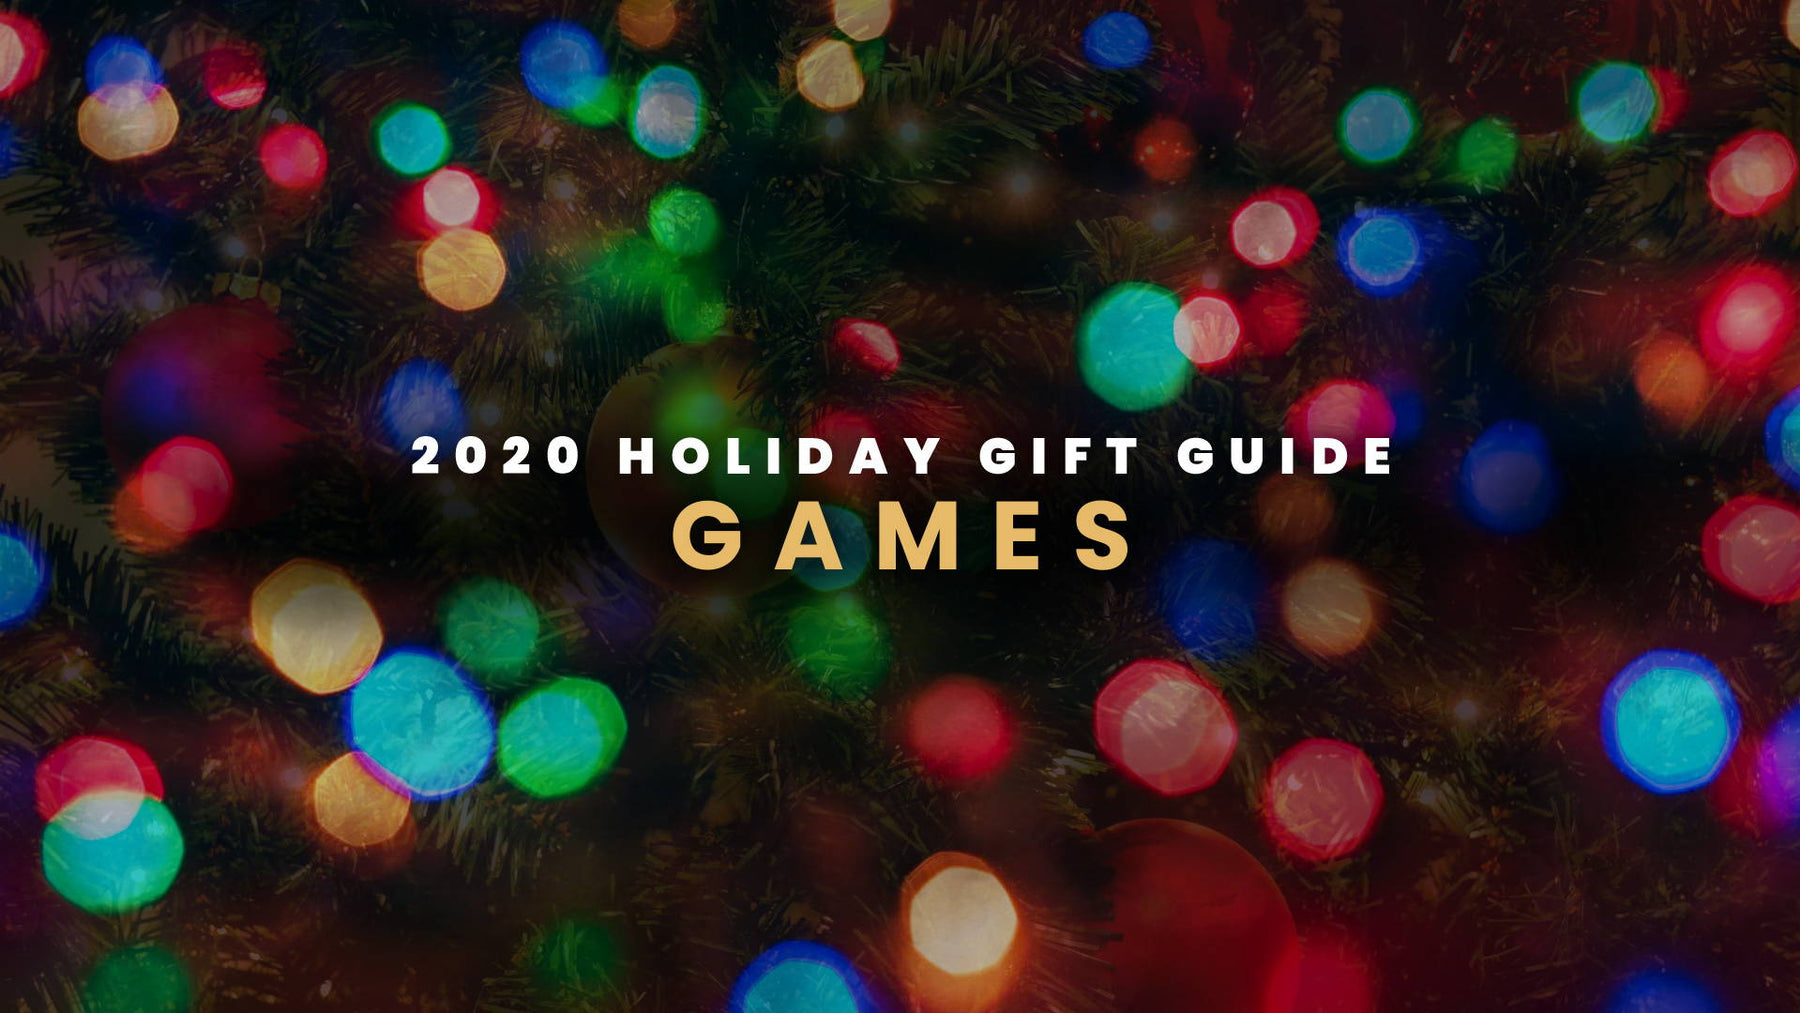 2020 Holiday Gift Guide - Games